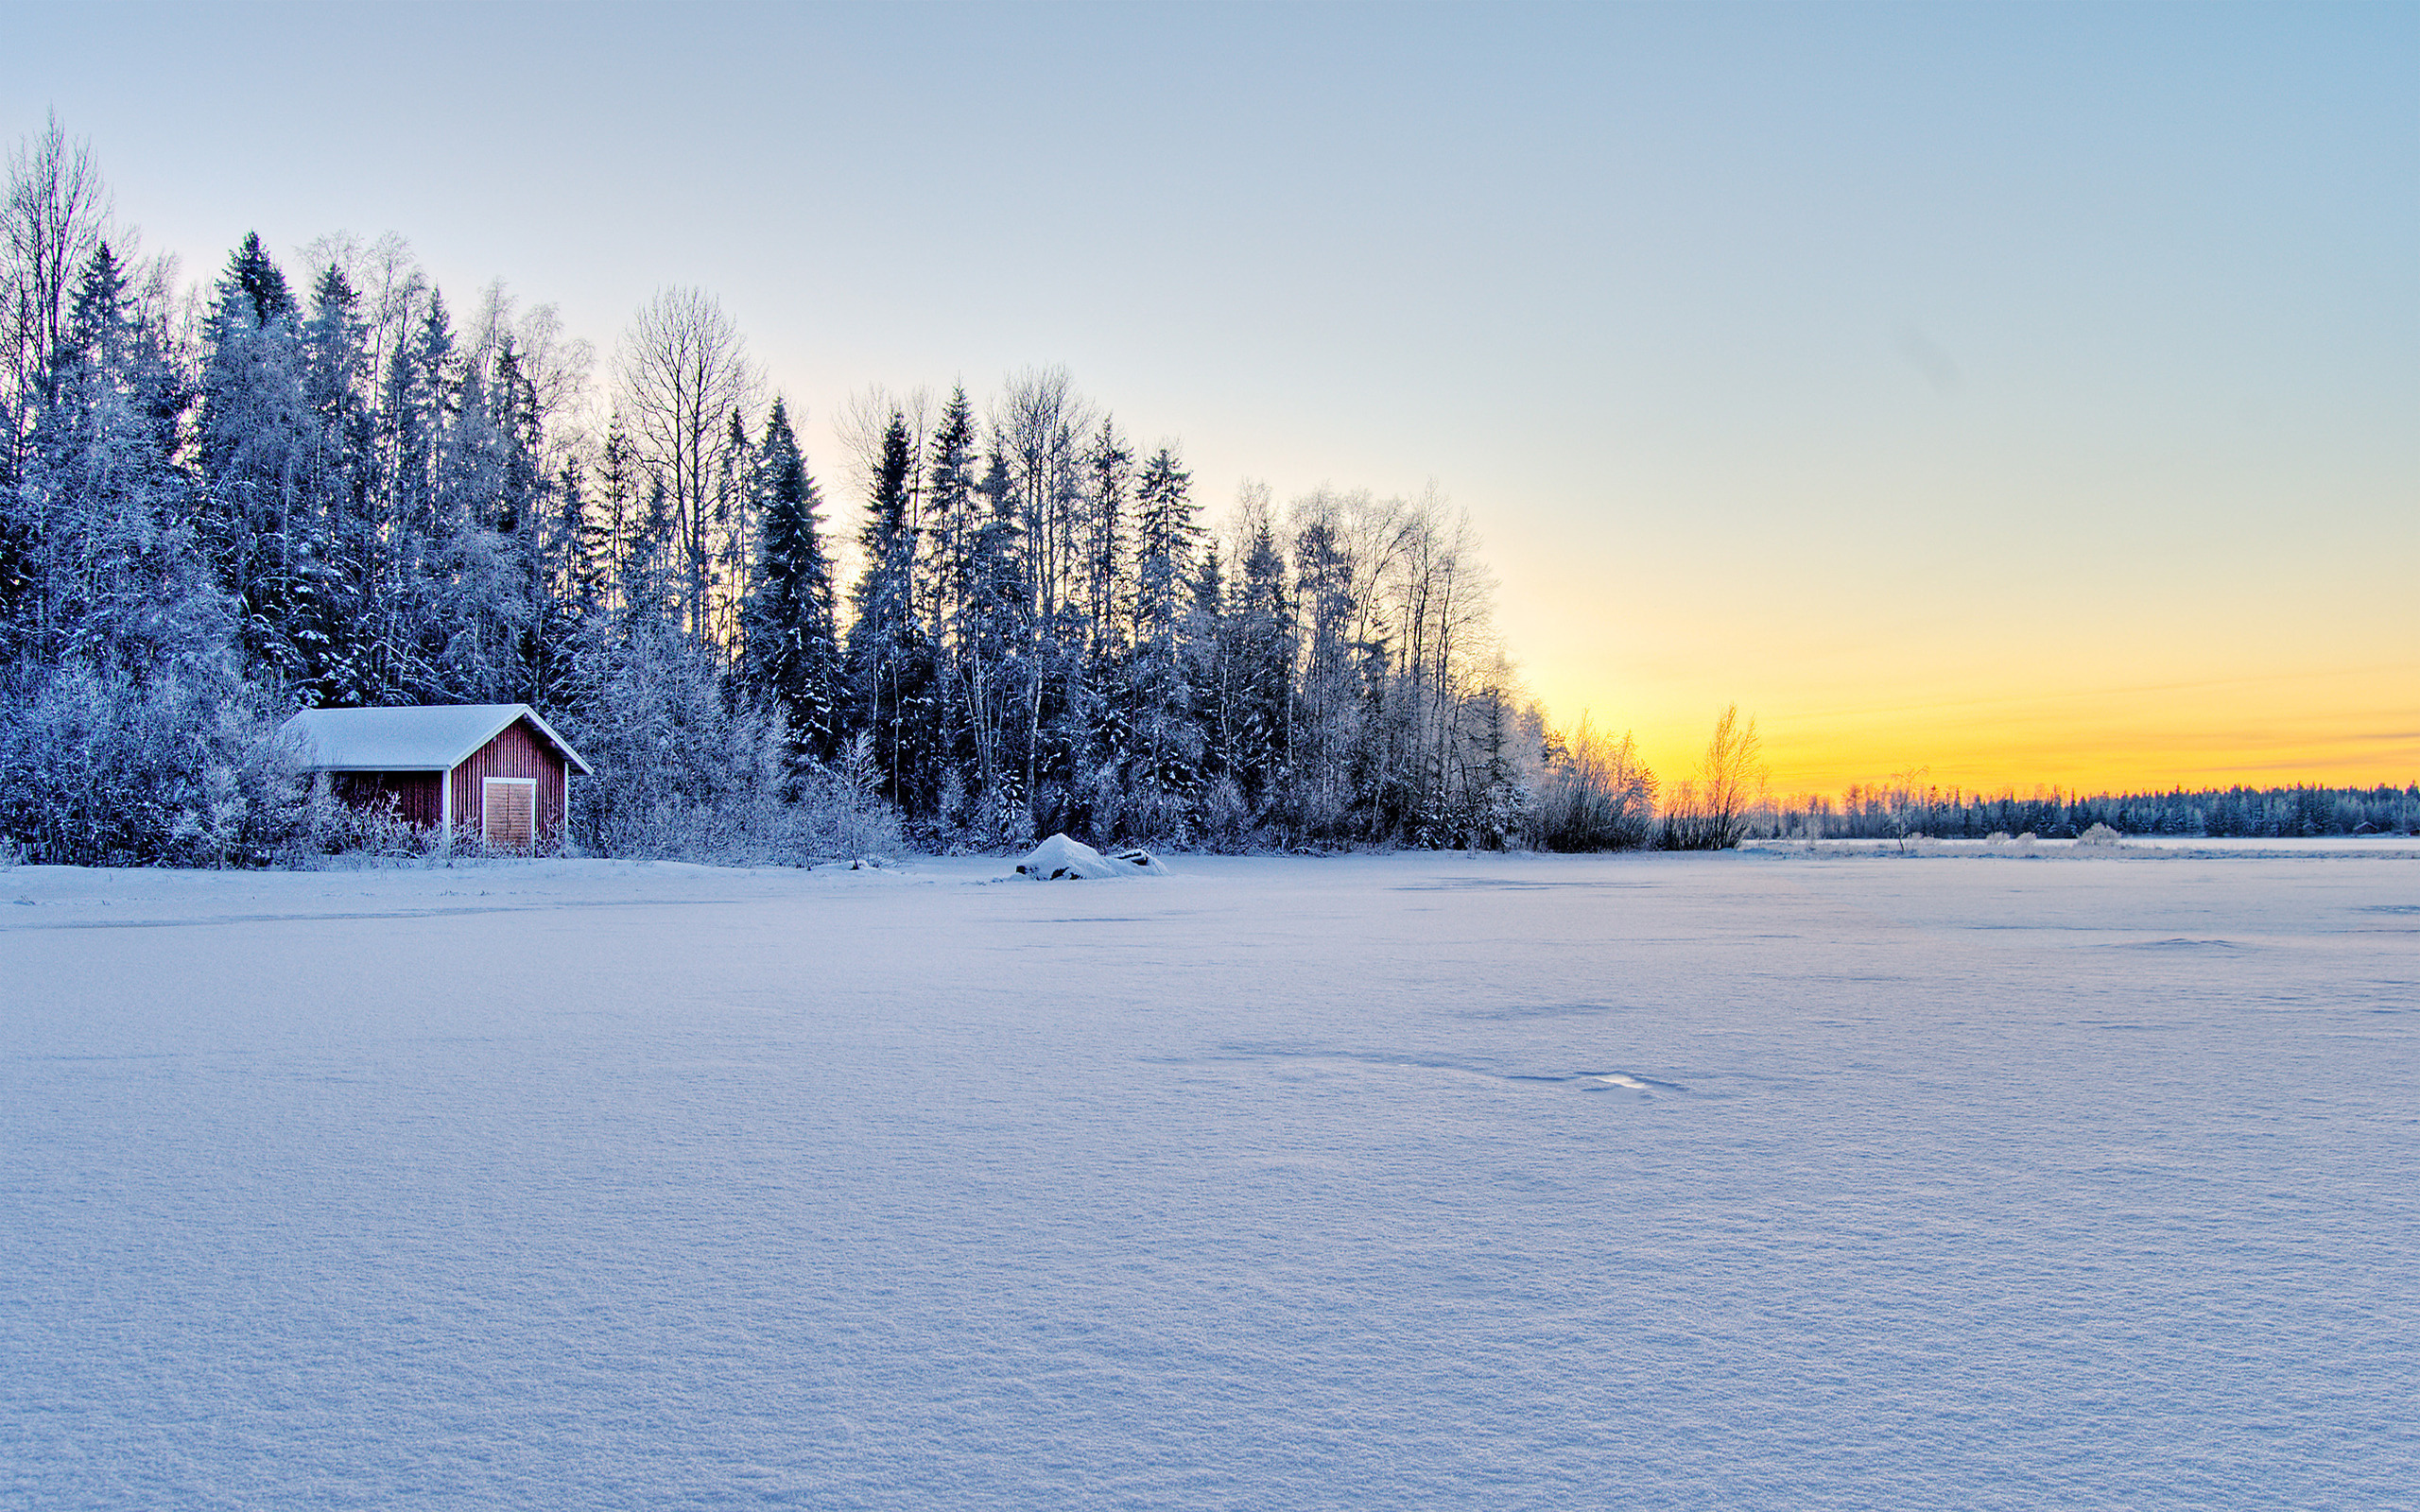 45118 download wallpaper Landscape, Winter, Snow screensavers and pictures for free